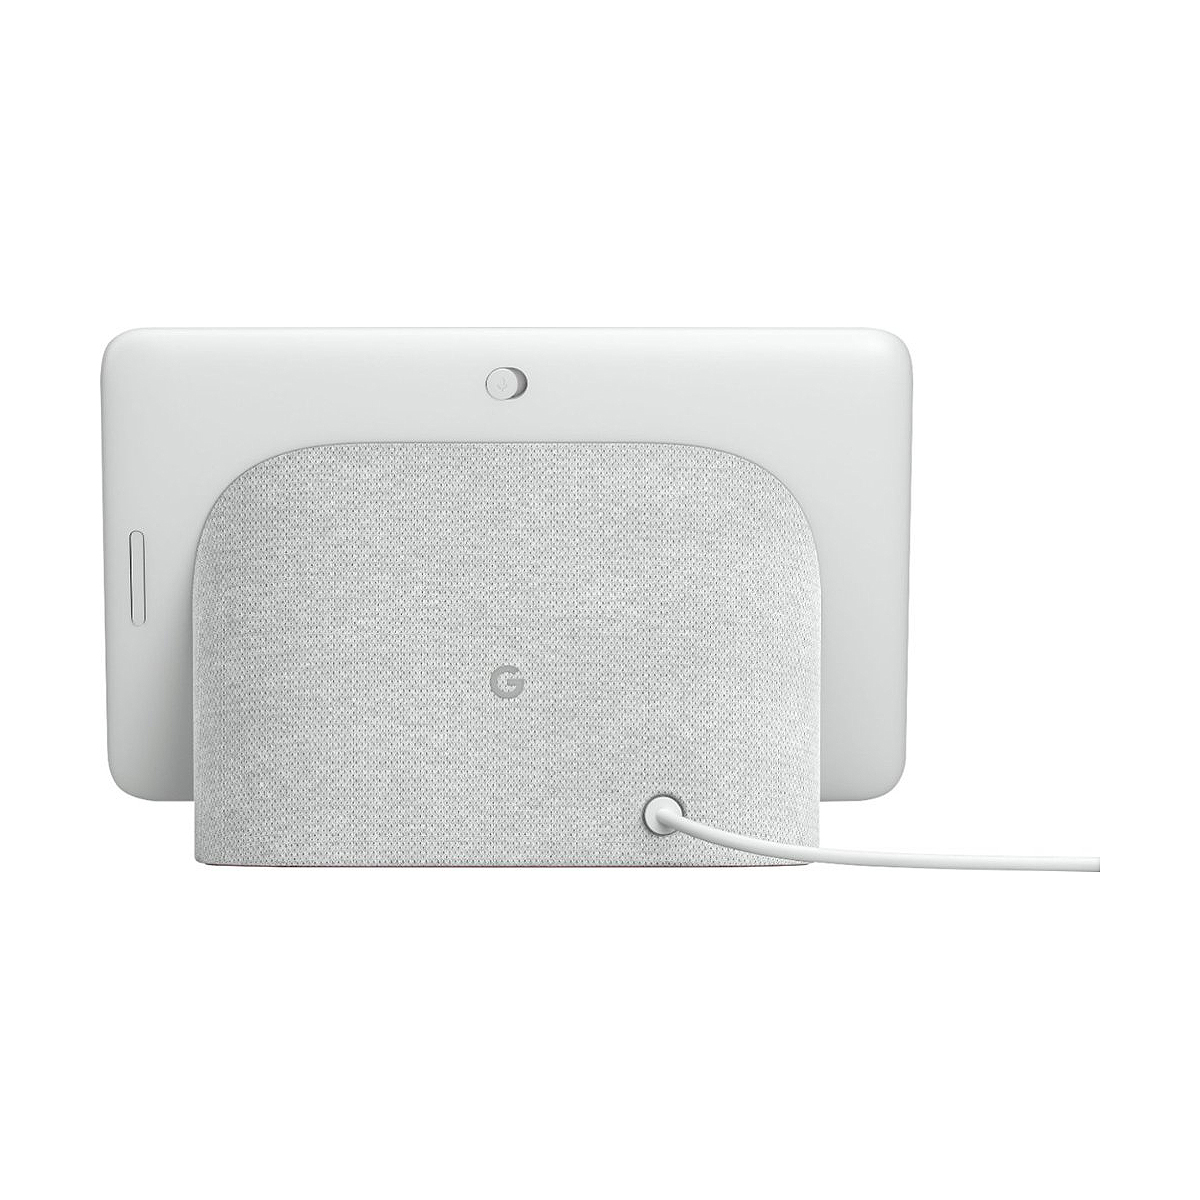 Google-Home-Hub-Smart-Home-Controller-with-Google-Assistant thumbnail 5